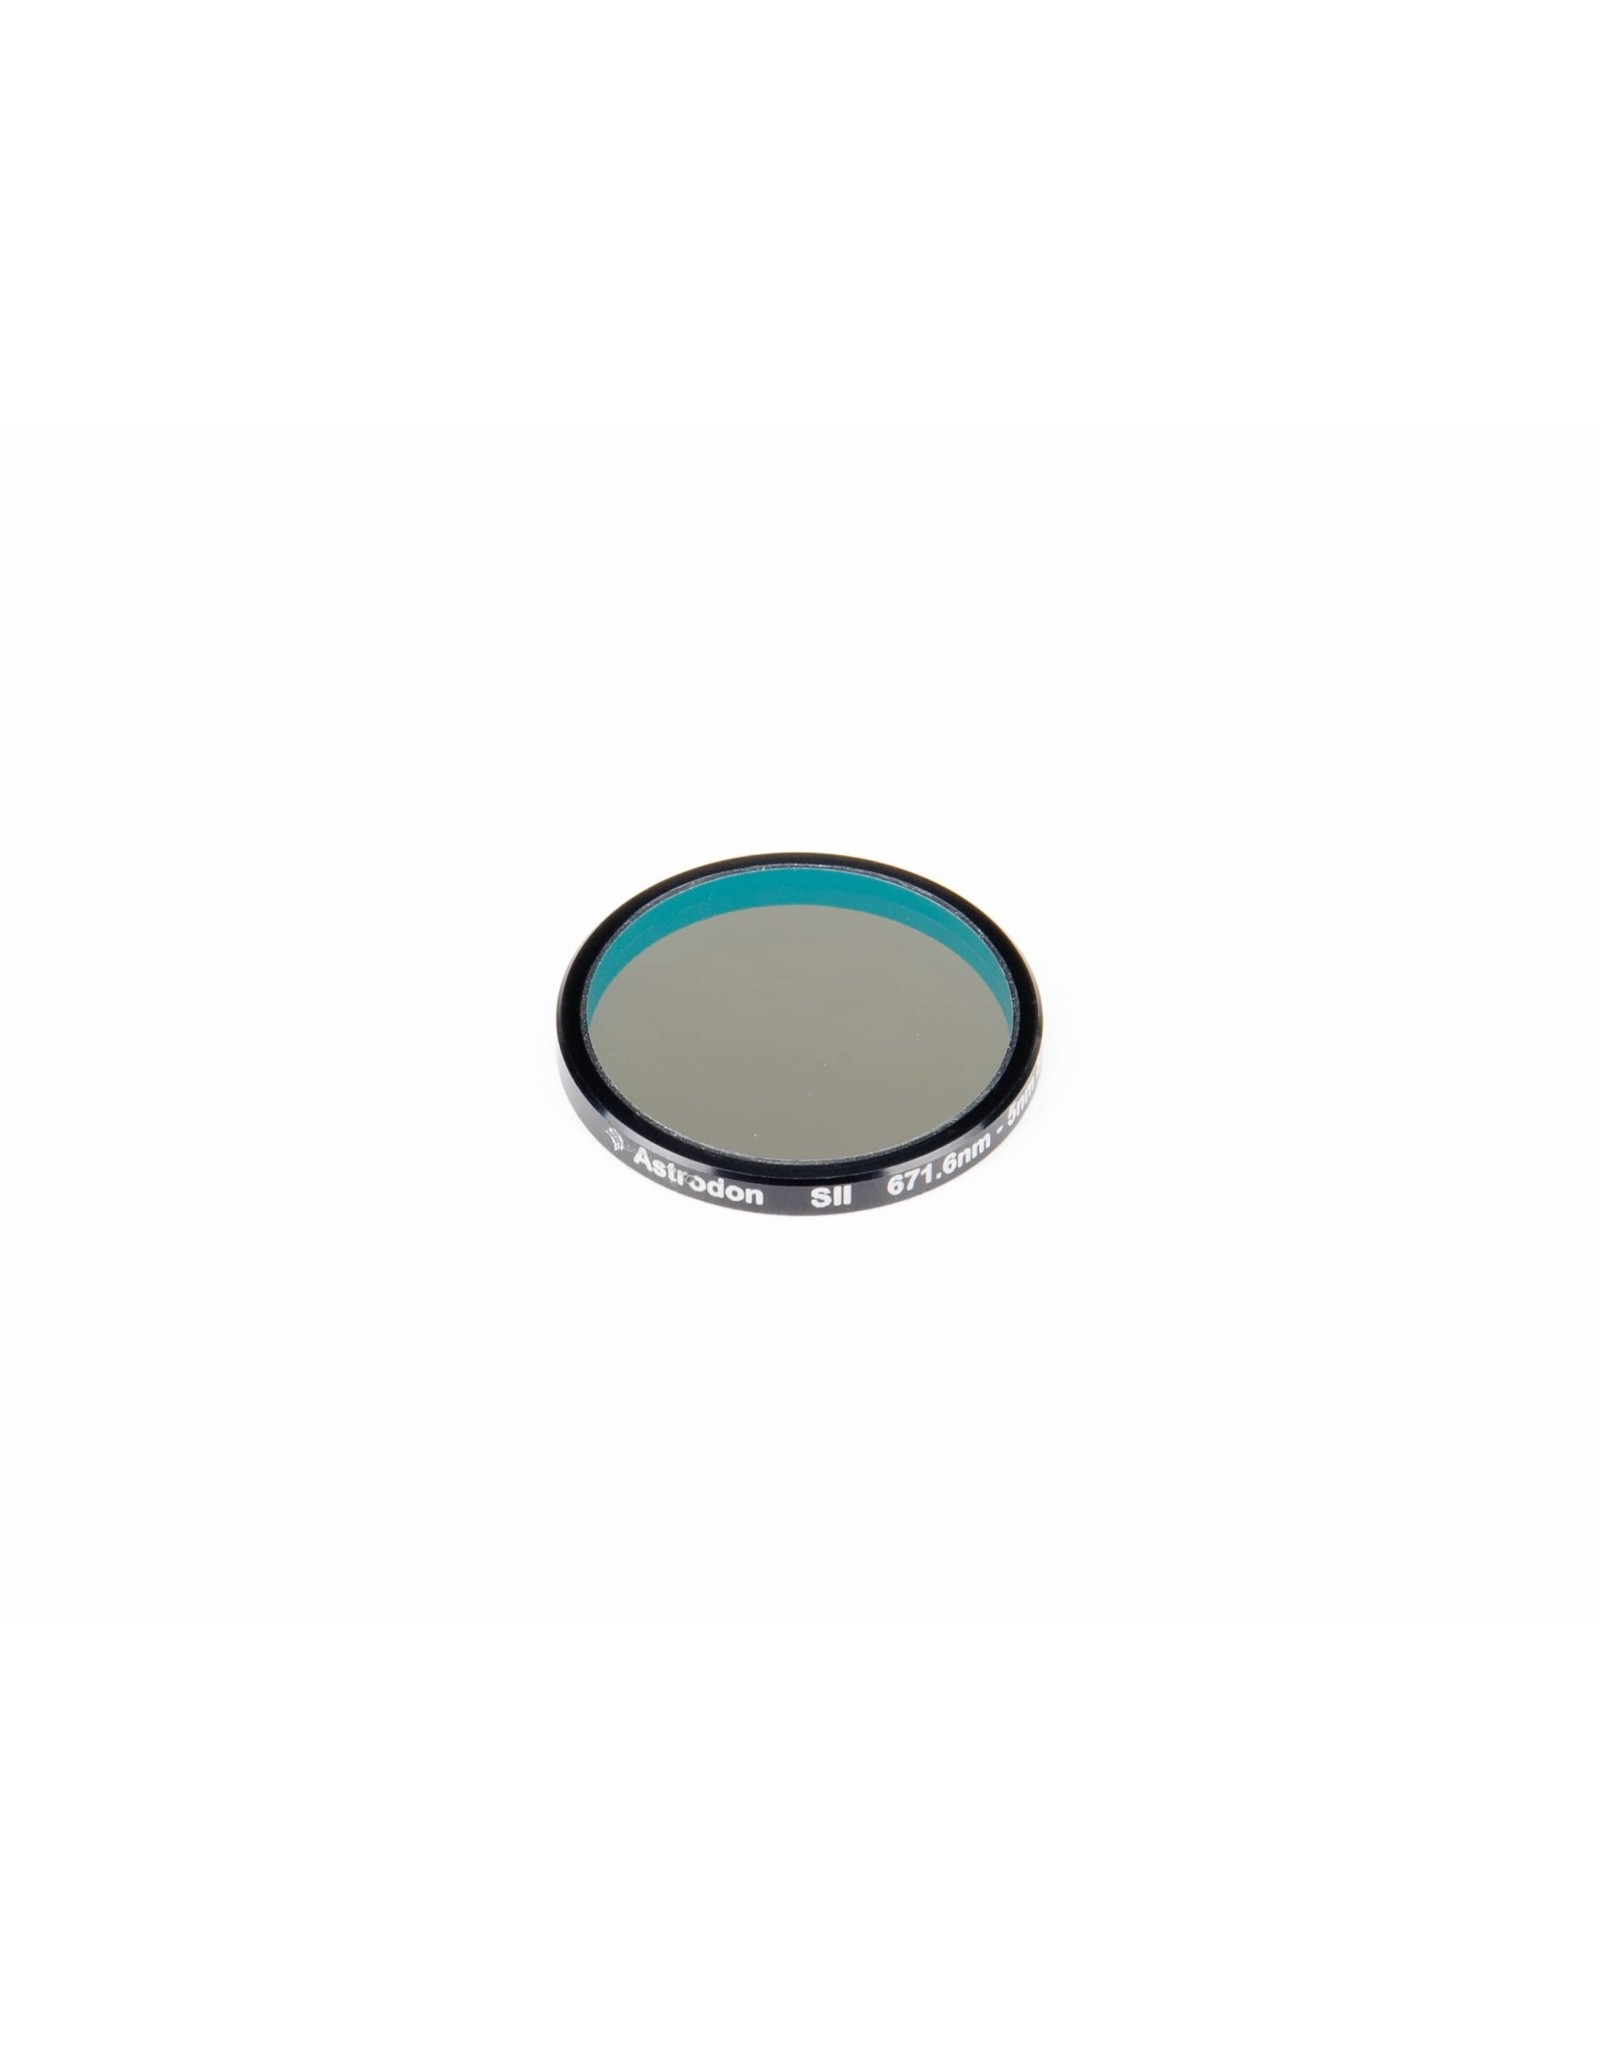 Astrodon Astrodon 5 nm Narrowband Filters – SII 5nm